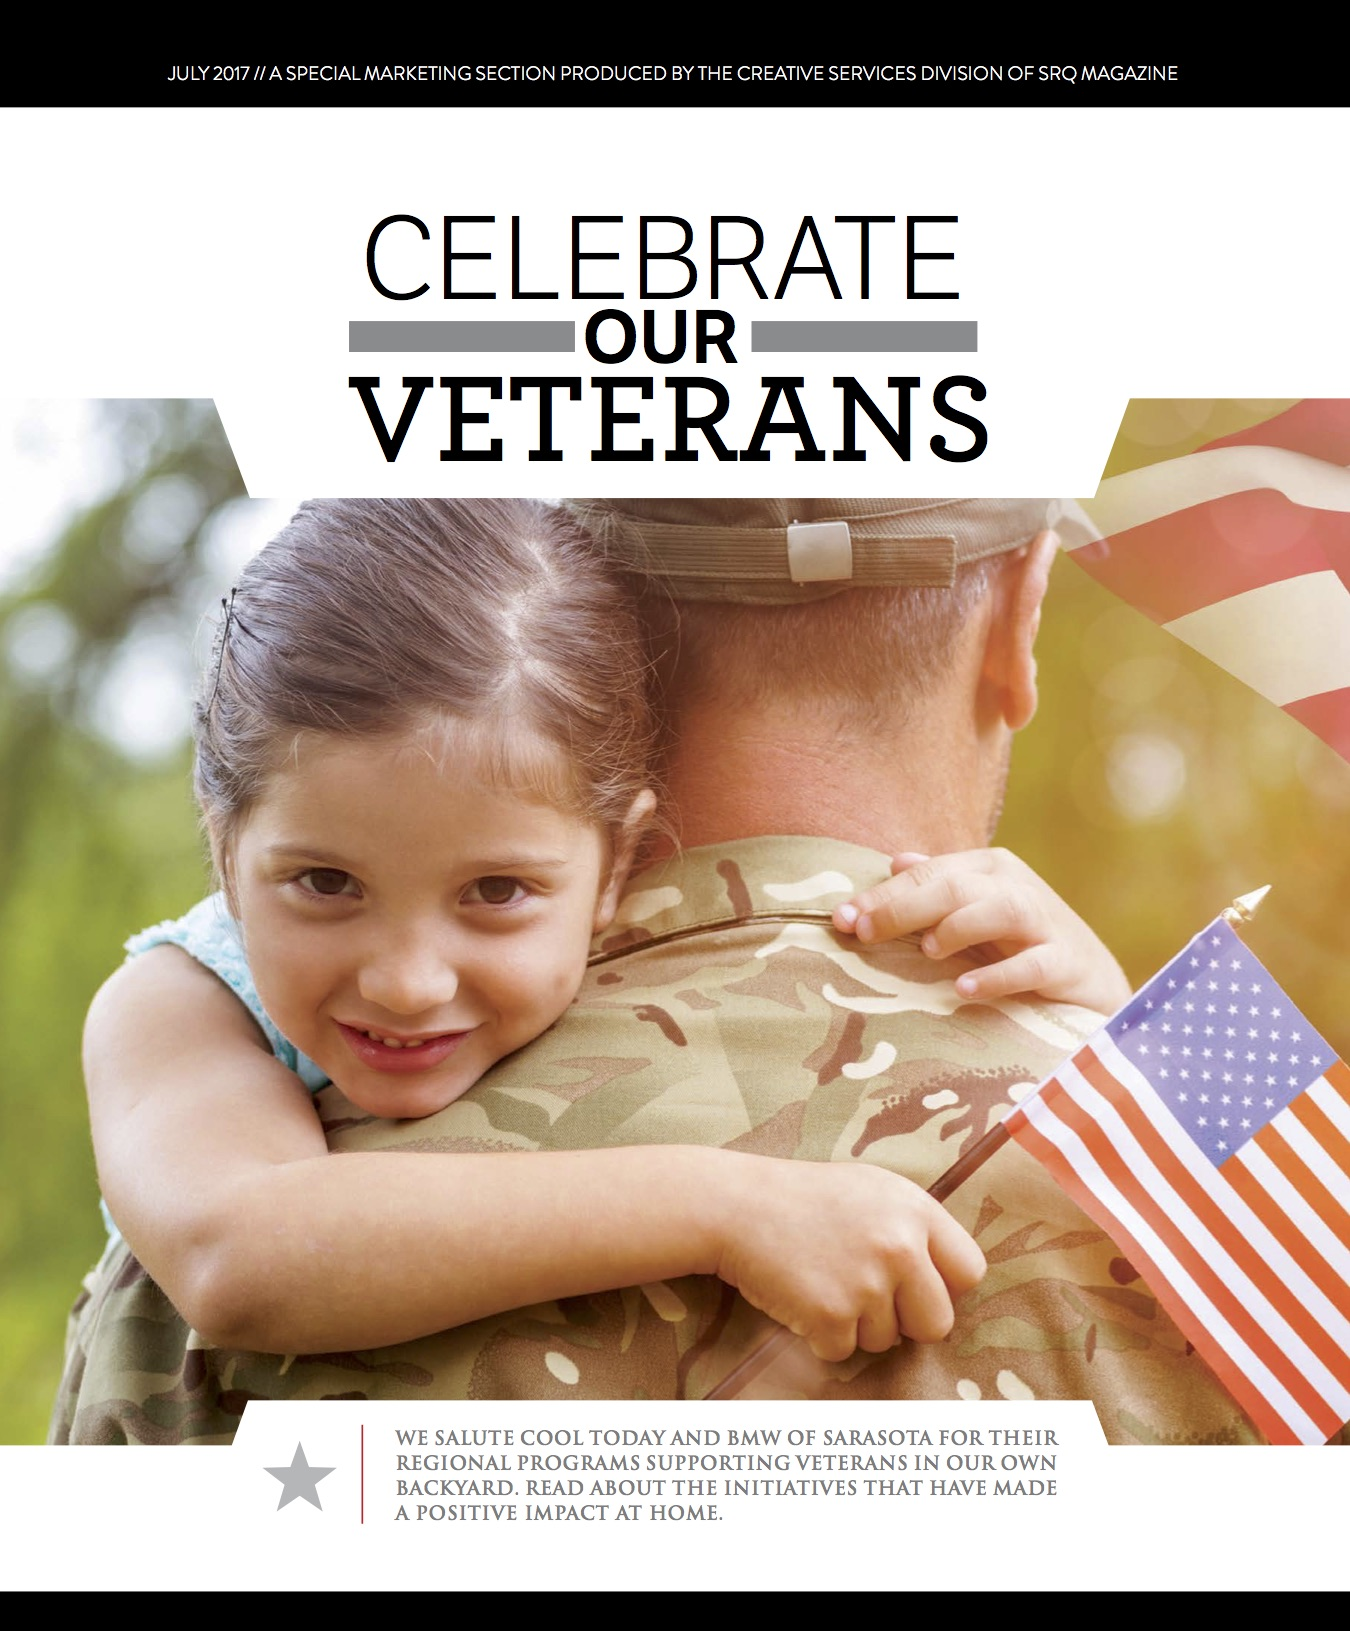 Celebrate our Veterans